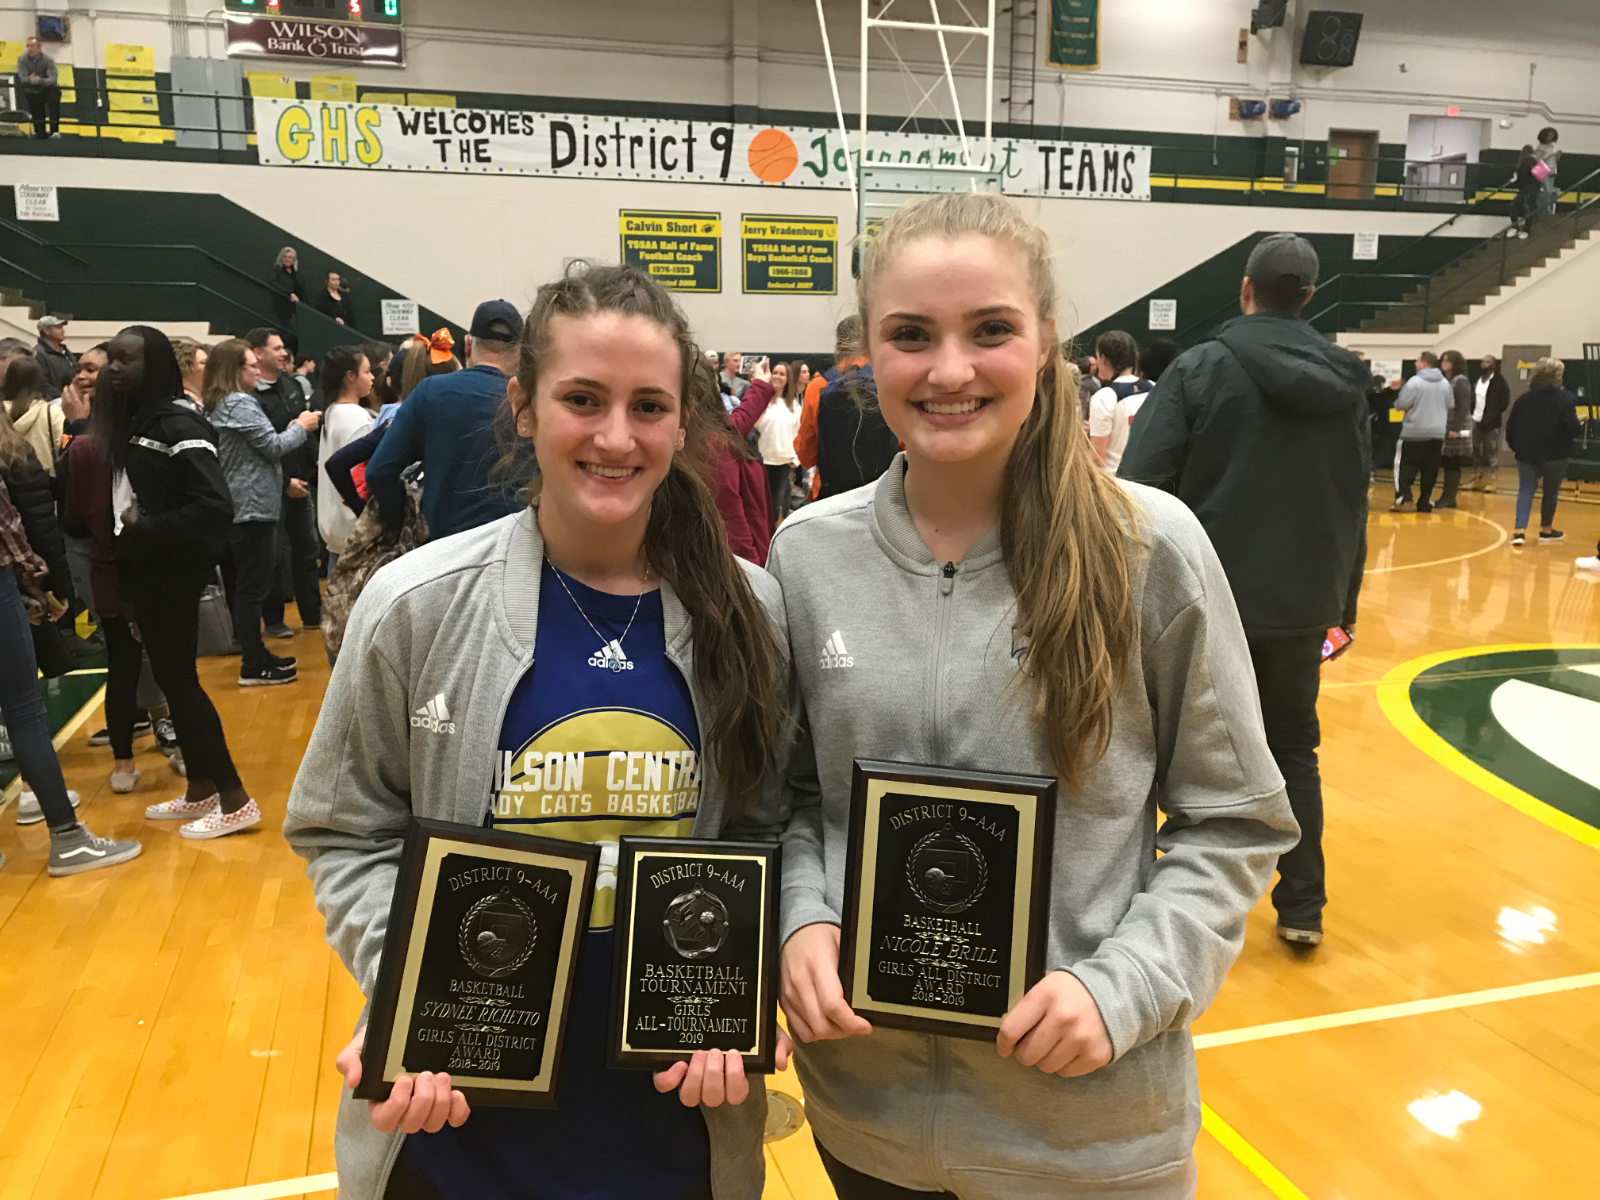 Winter–Basketball–Nicole Brill, Sydnee Richetto and Daniel Jackson Named All-District Team for 2018-19